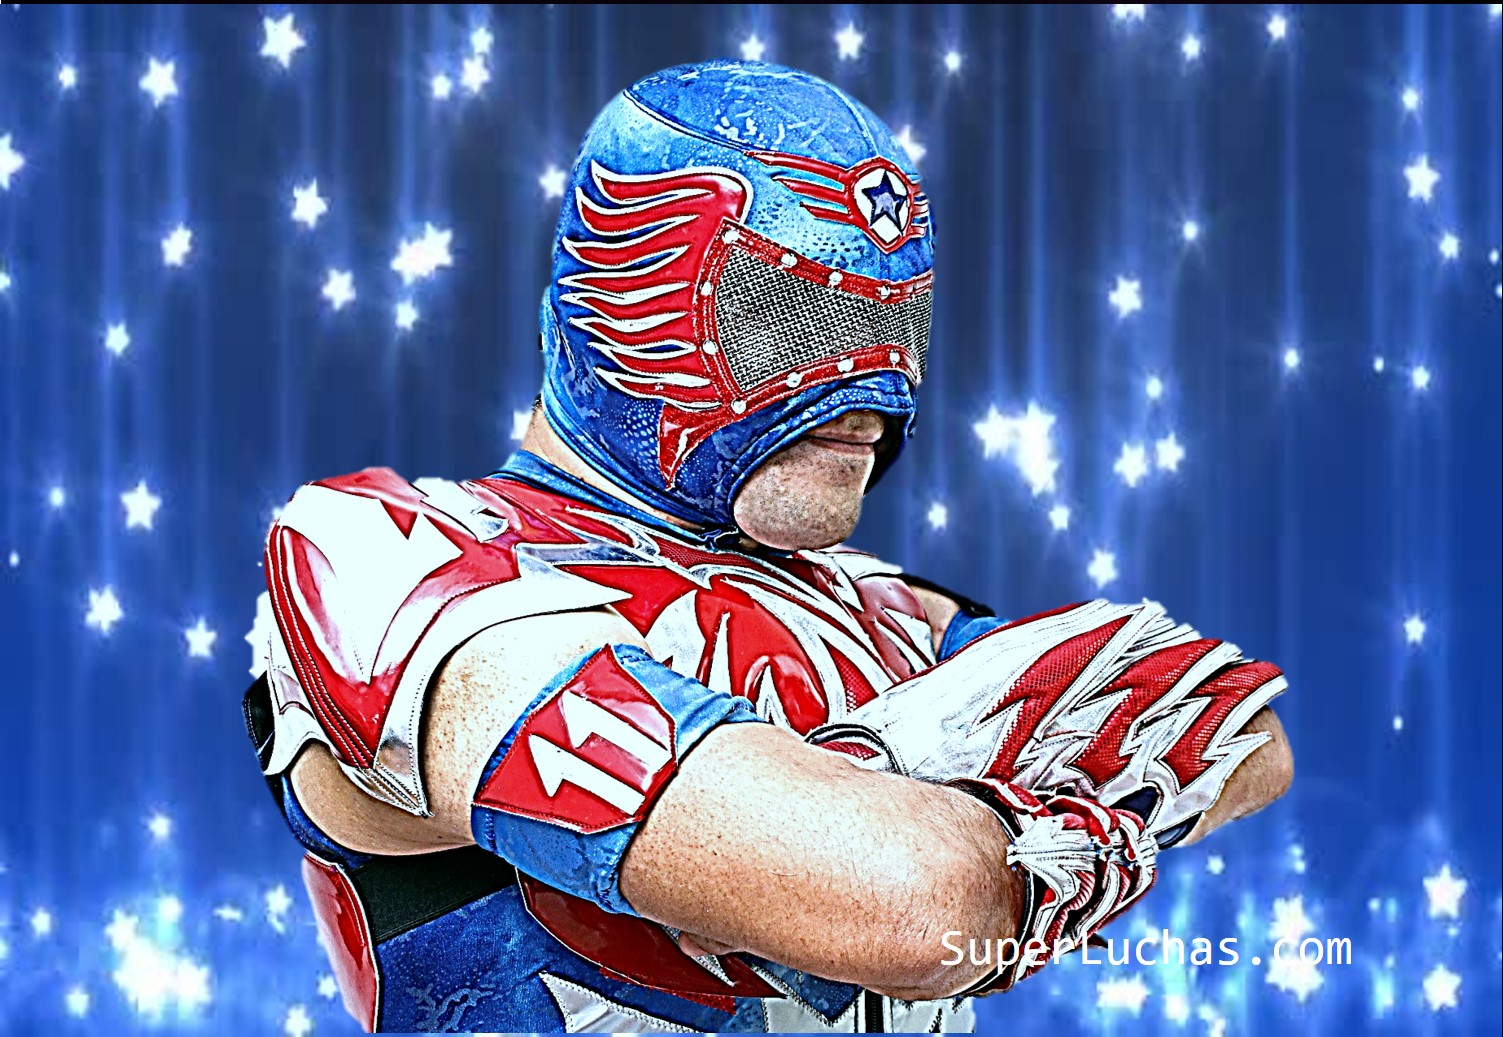 Aerostar asegura permanencia en AAA y lanza reto a Monsther Clown 9